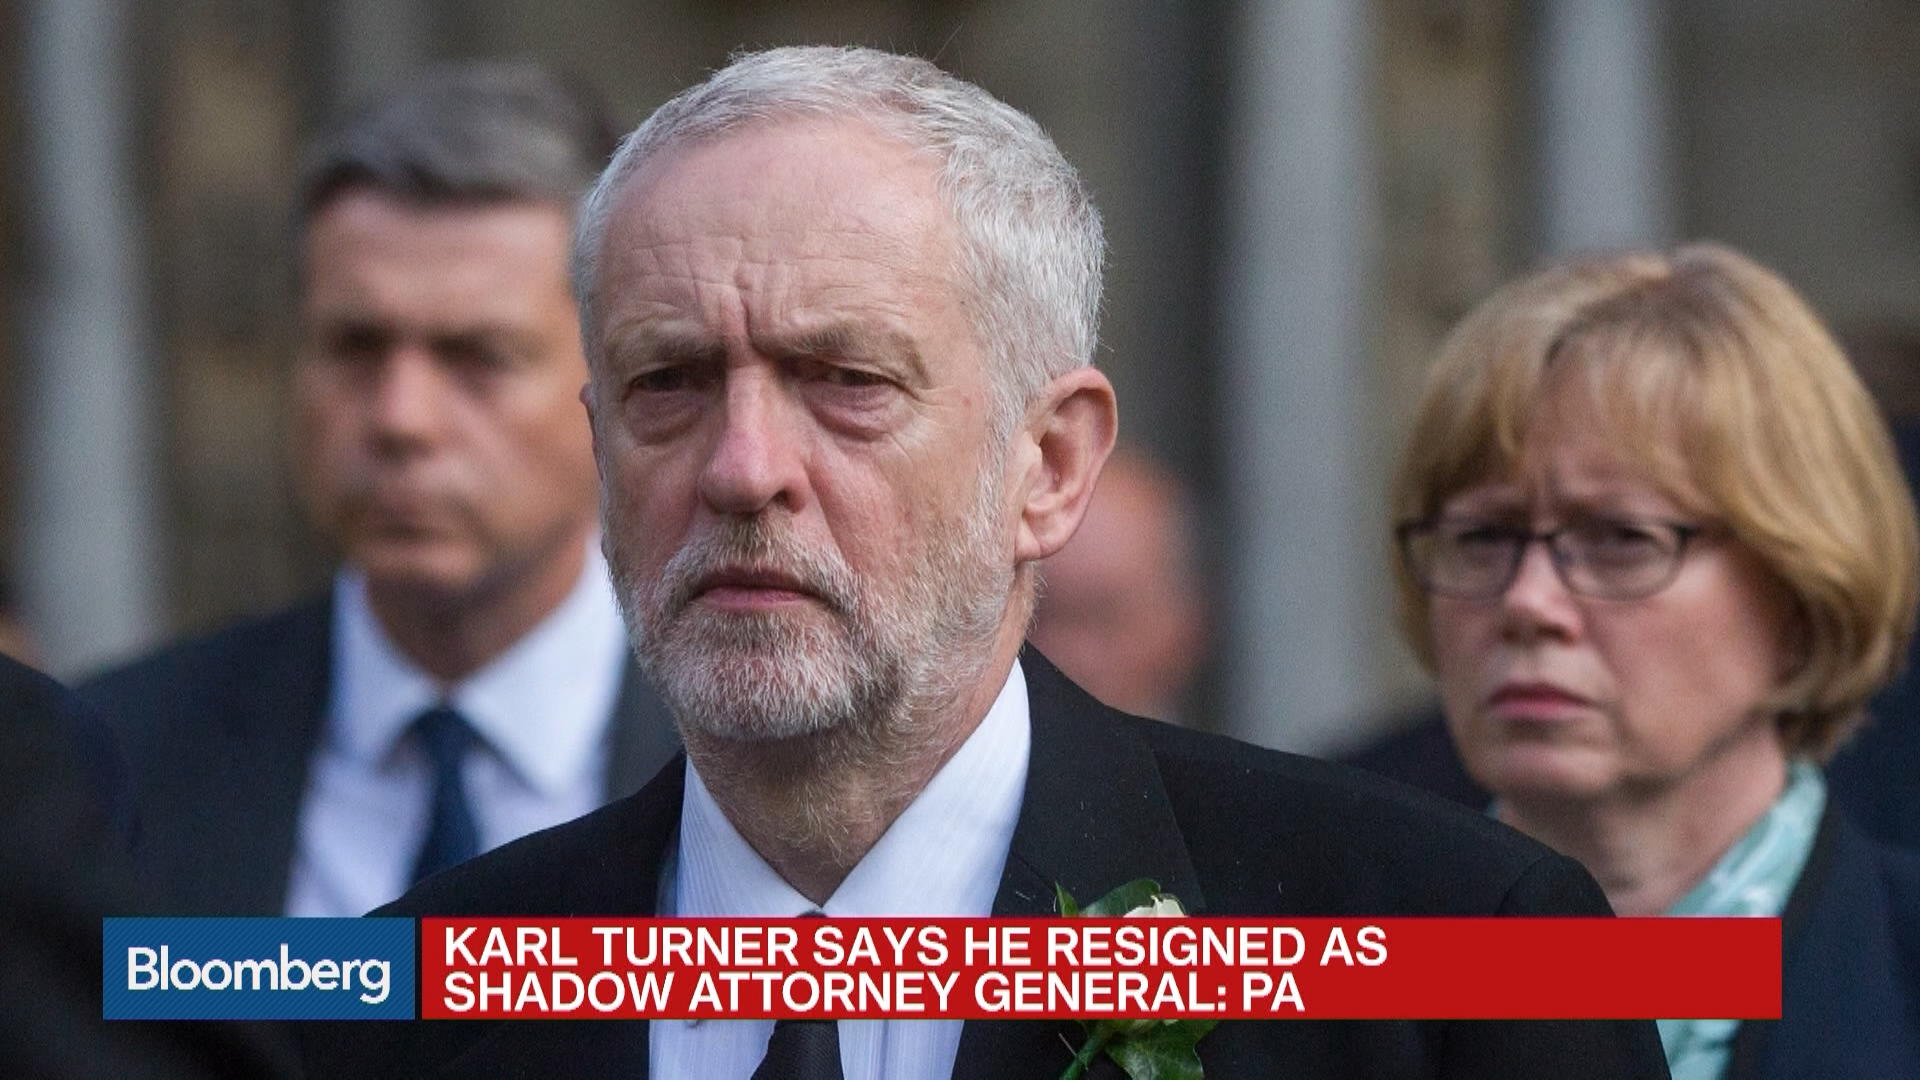 Karl Turner Has Resigned as Shadow Attorney General: PA